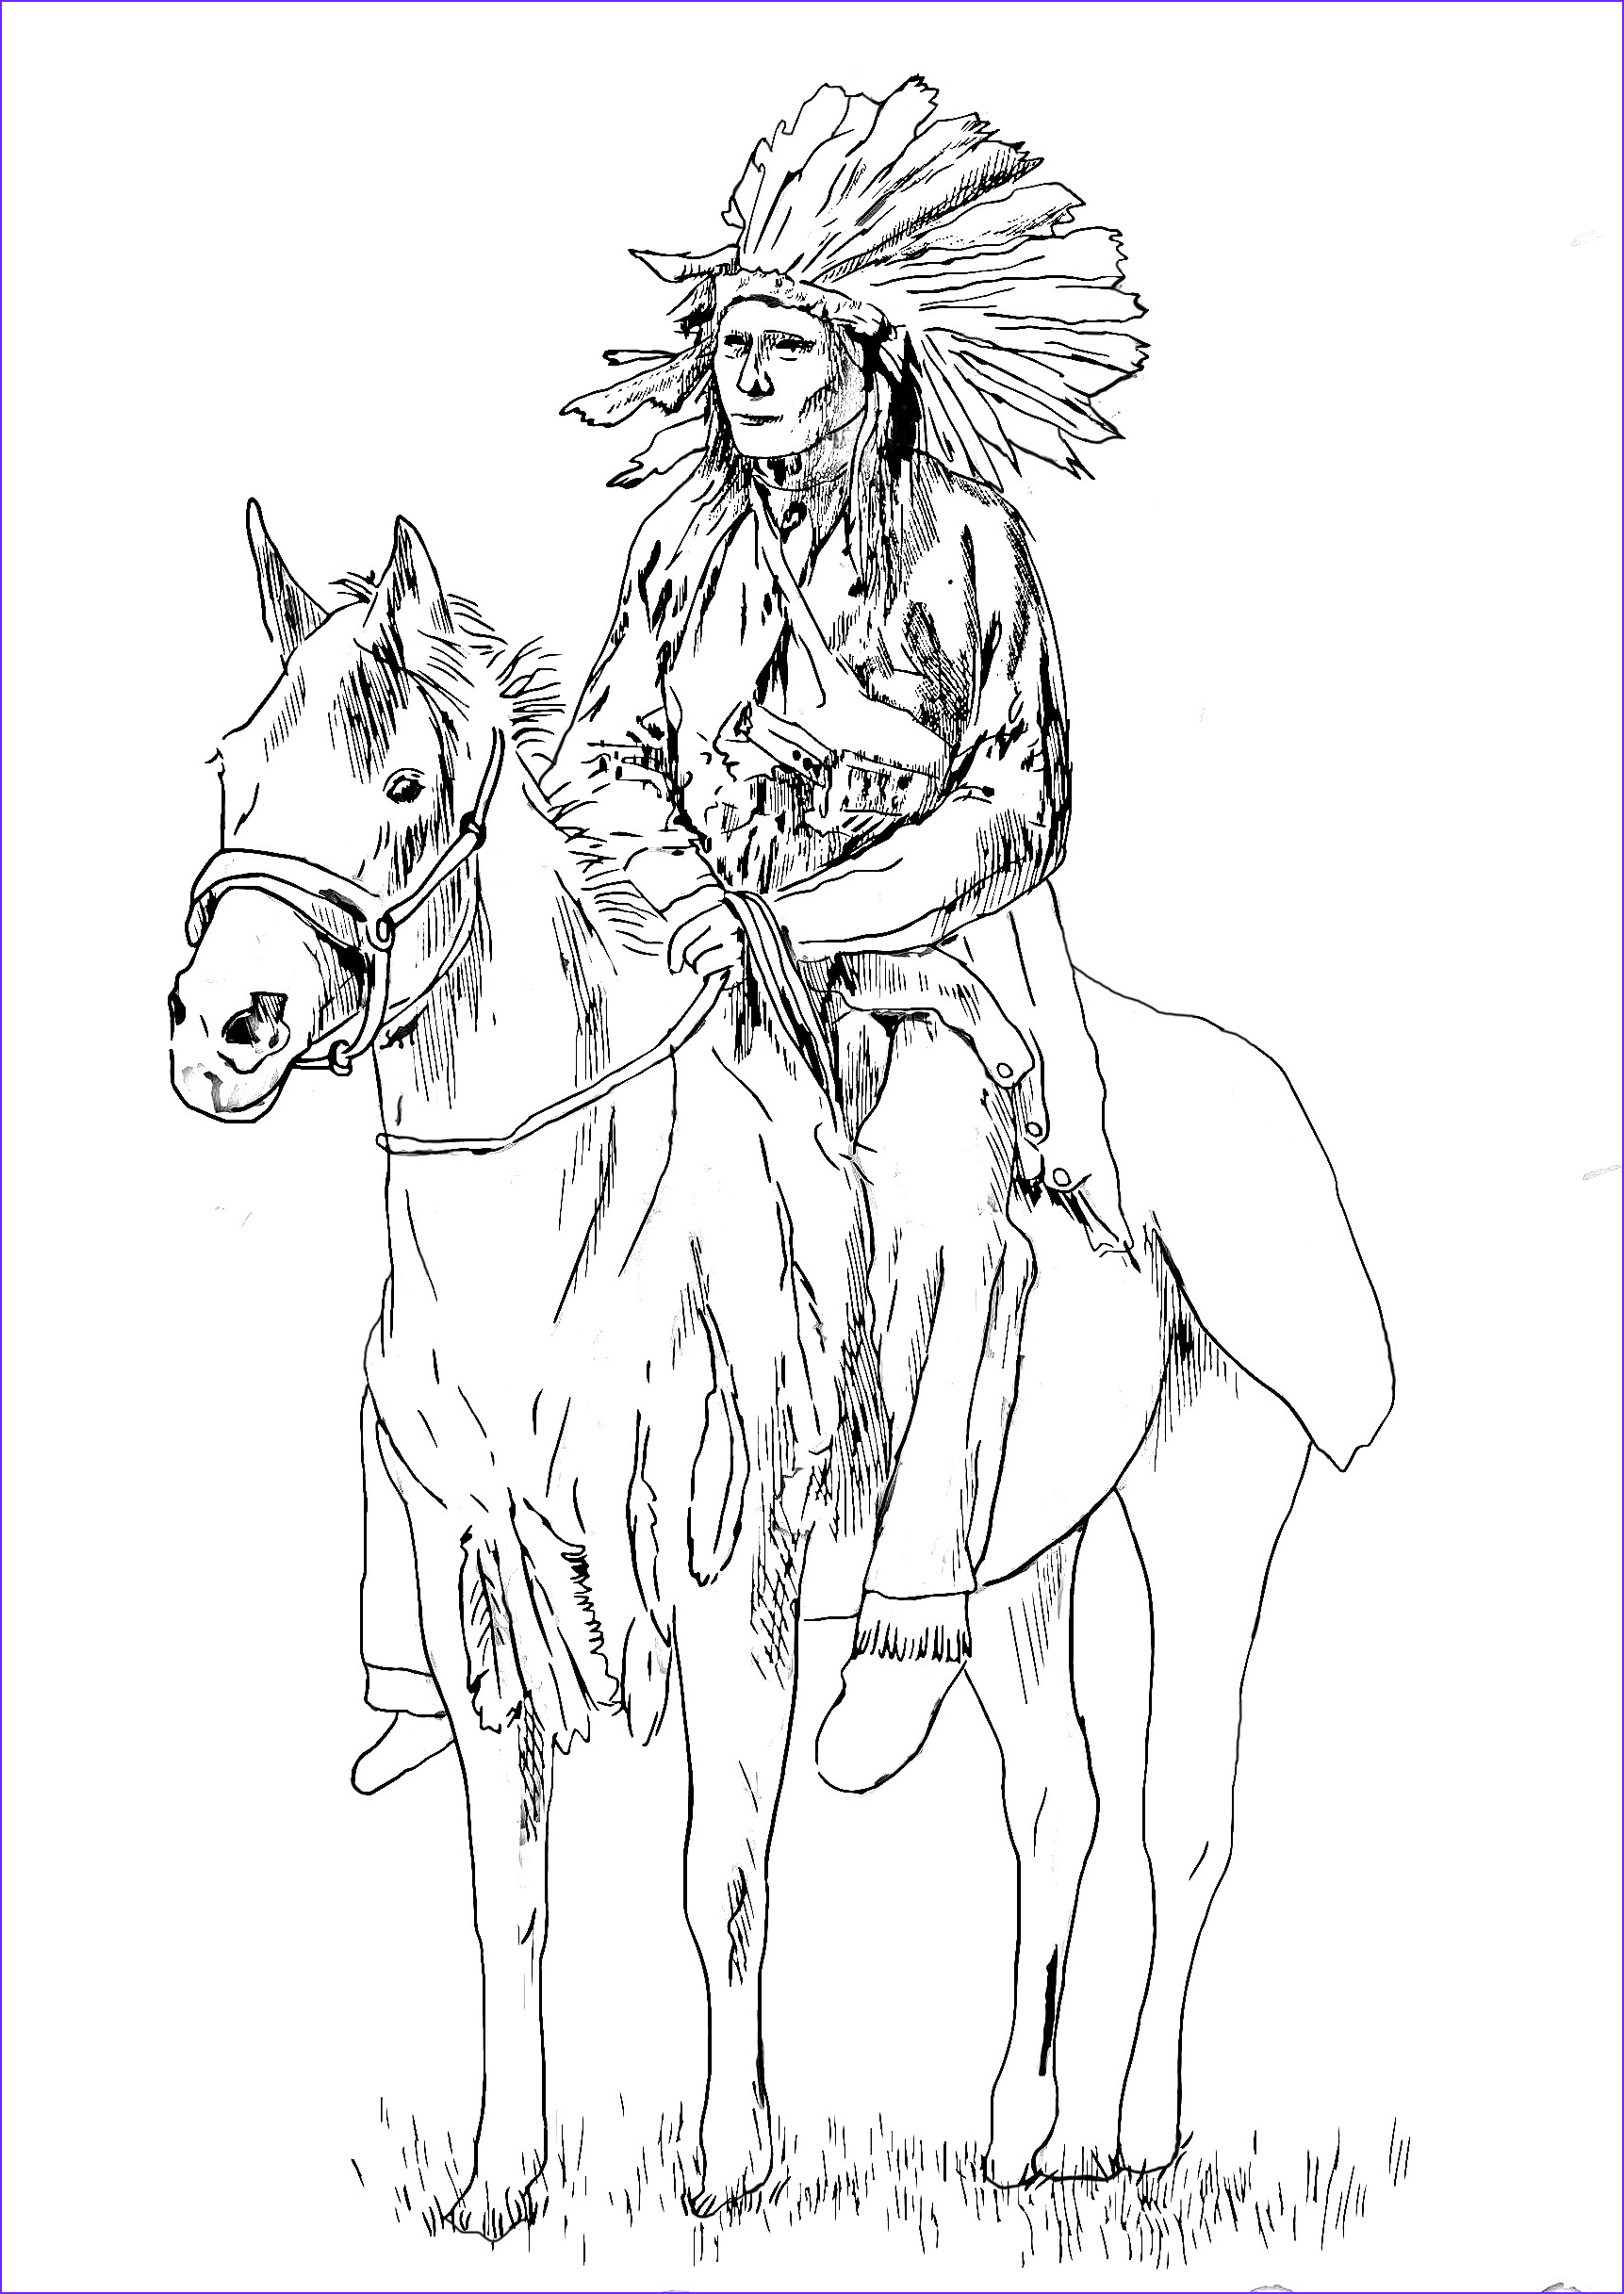 American Indian Coloring Pages Best Of Images Native American On His Horse Native American Adult